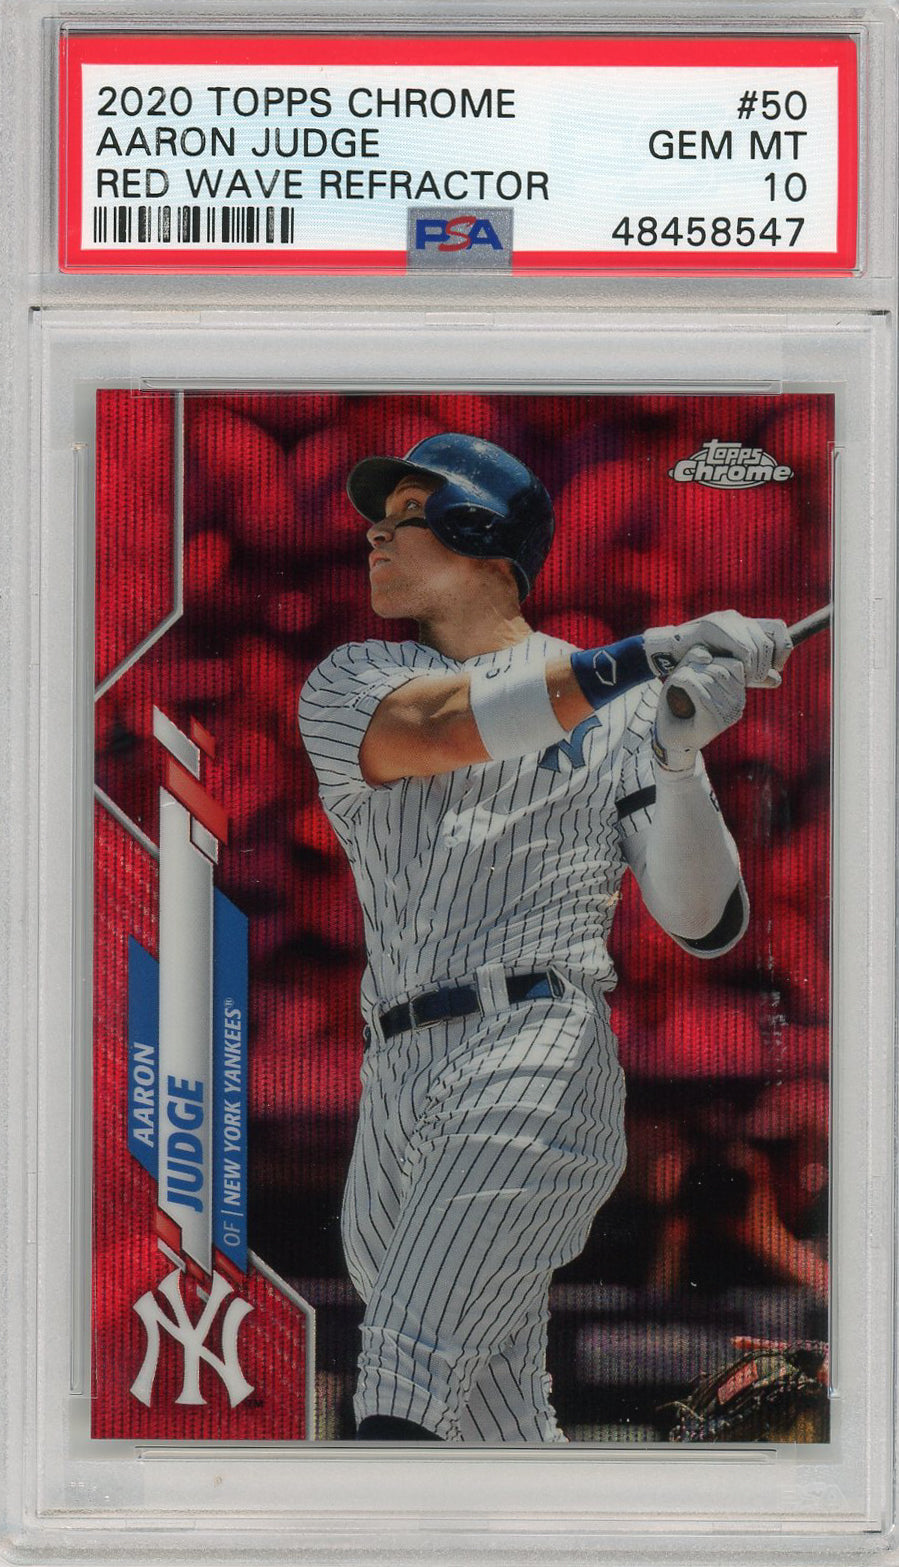 Aaron Judge New York Yankees 2020 Topps Chrome Red Wave Refractor Baseball Card #50 Graded PSA 10 GEM MINT 1/5-Powers Sports Memorabilia